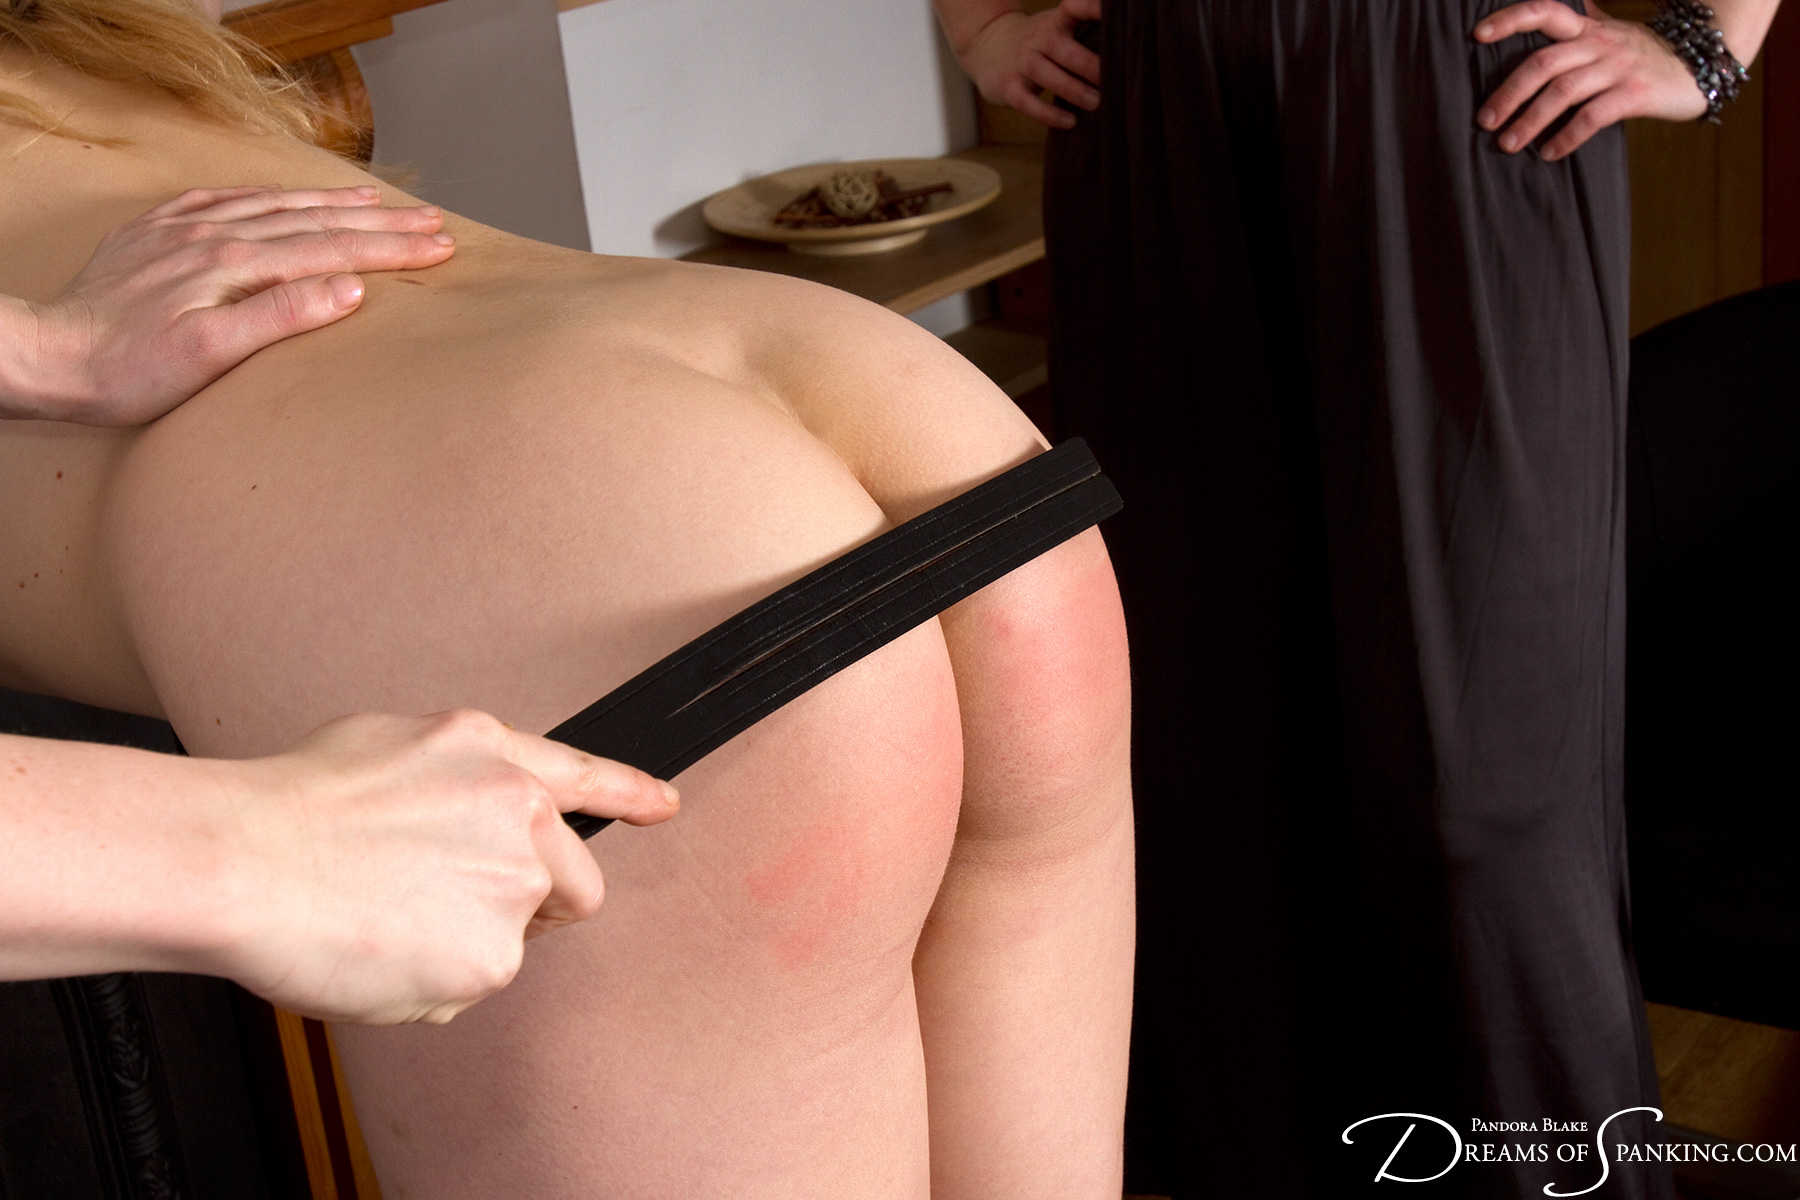 Amelia Jane Rutherford's spanked bottom at Dreams of Spanking